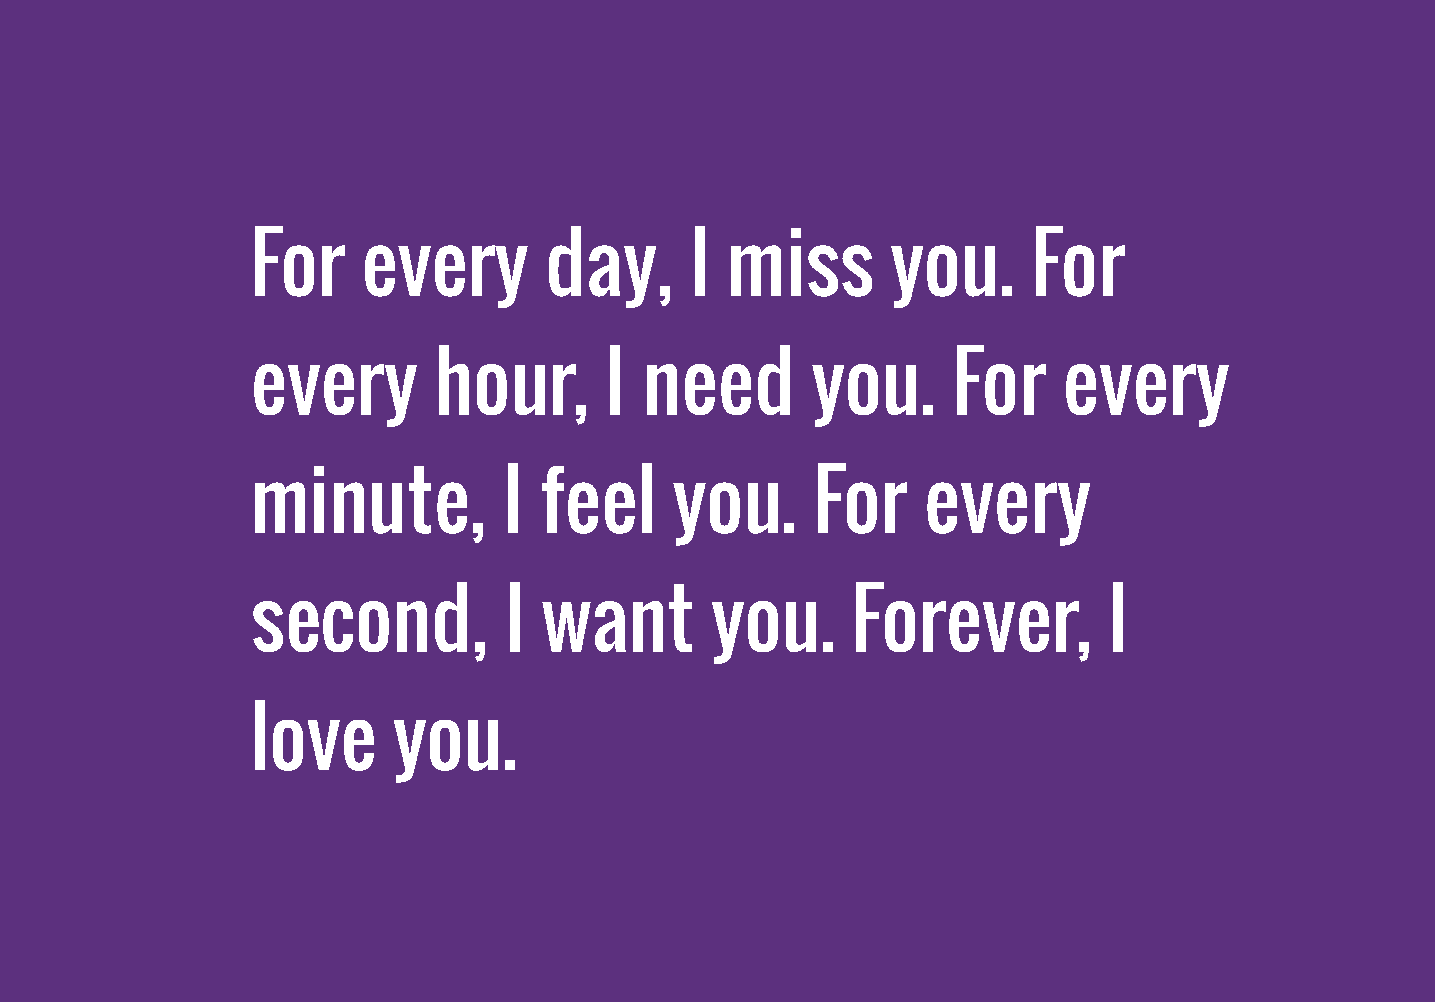 I Love You Quotes For Him Love Yourself Quotes I Love You Quotes For Him Be Yourself Quotes